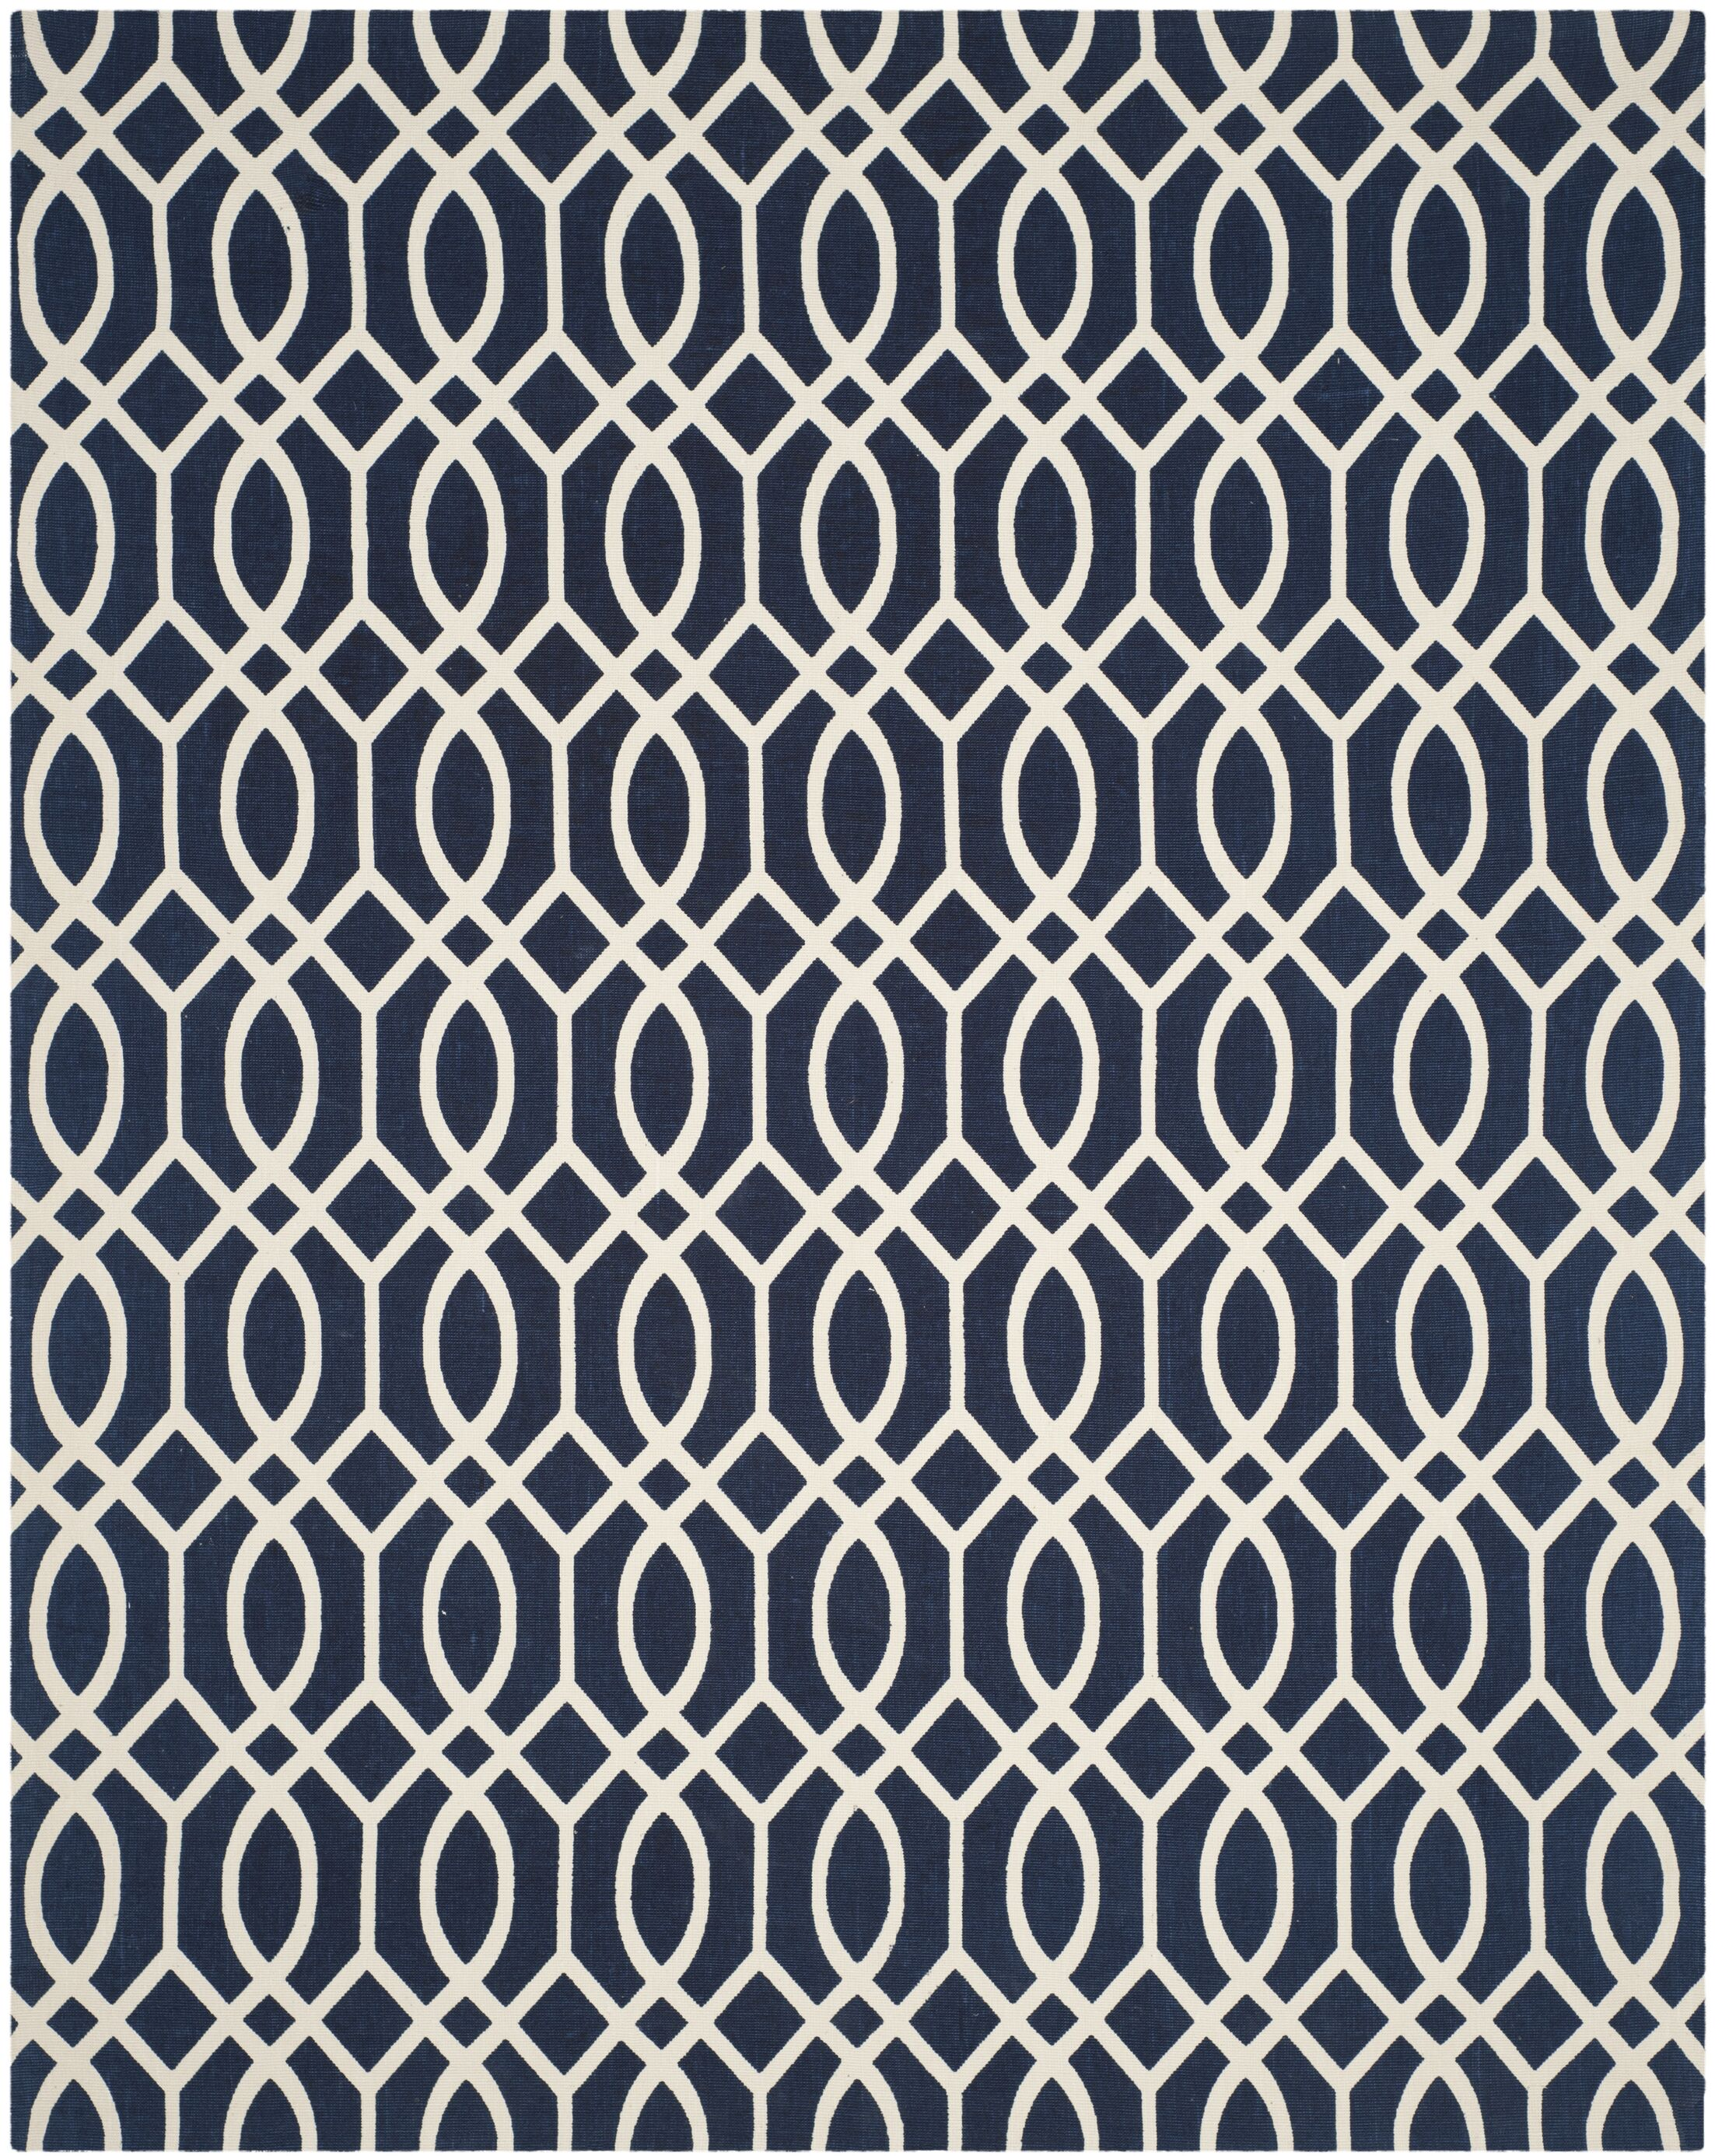 Quentin Road Navy/Ivory Area Rug Rug Size: Rectangle 8' x 10'